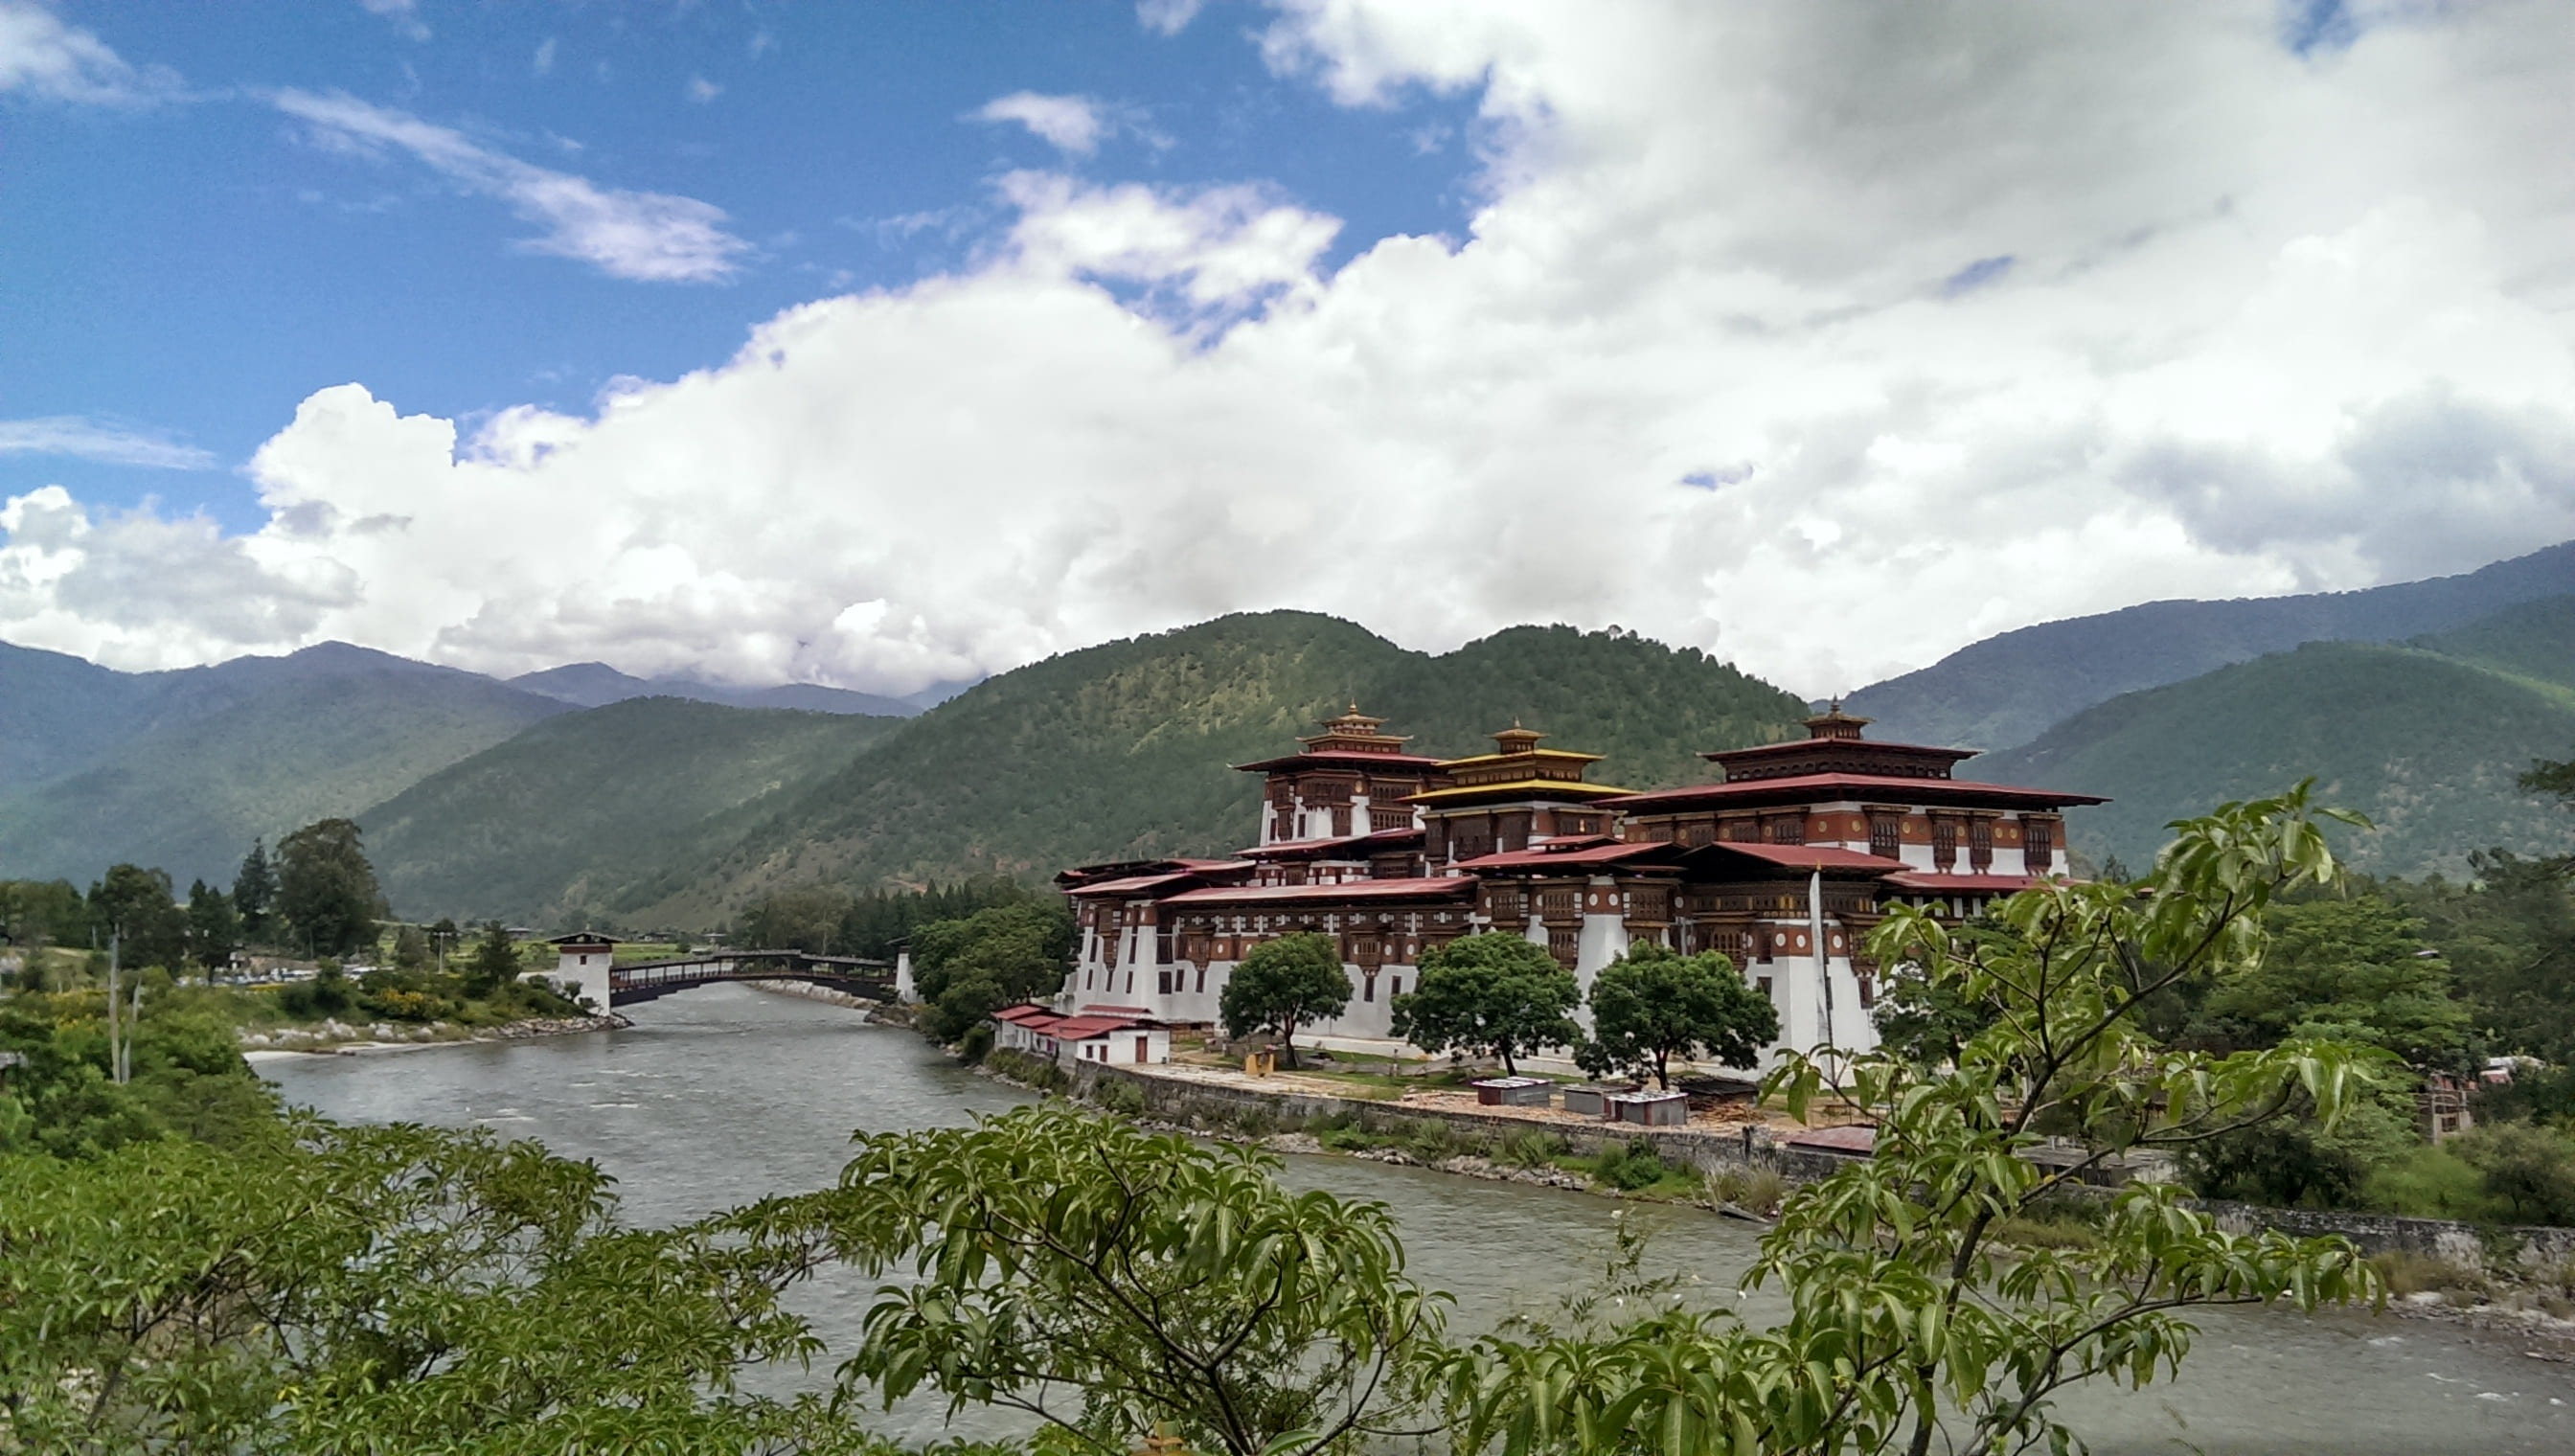 7 DAY SHANGRILA'S DELIGHT CULTURAL TOUR IN BHUTAN